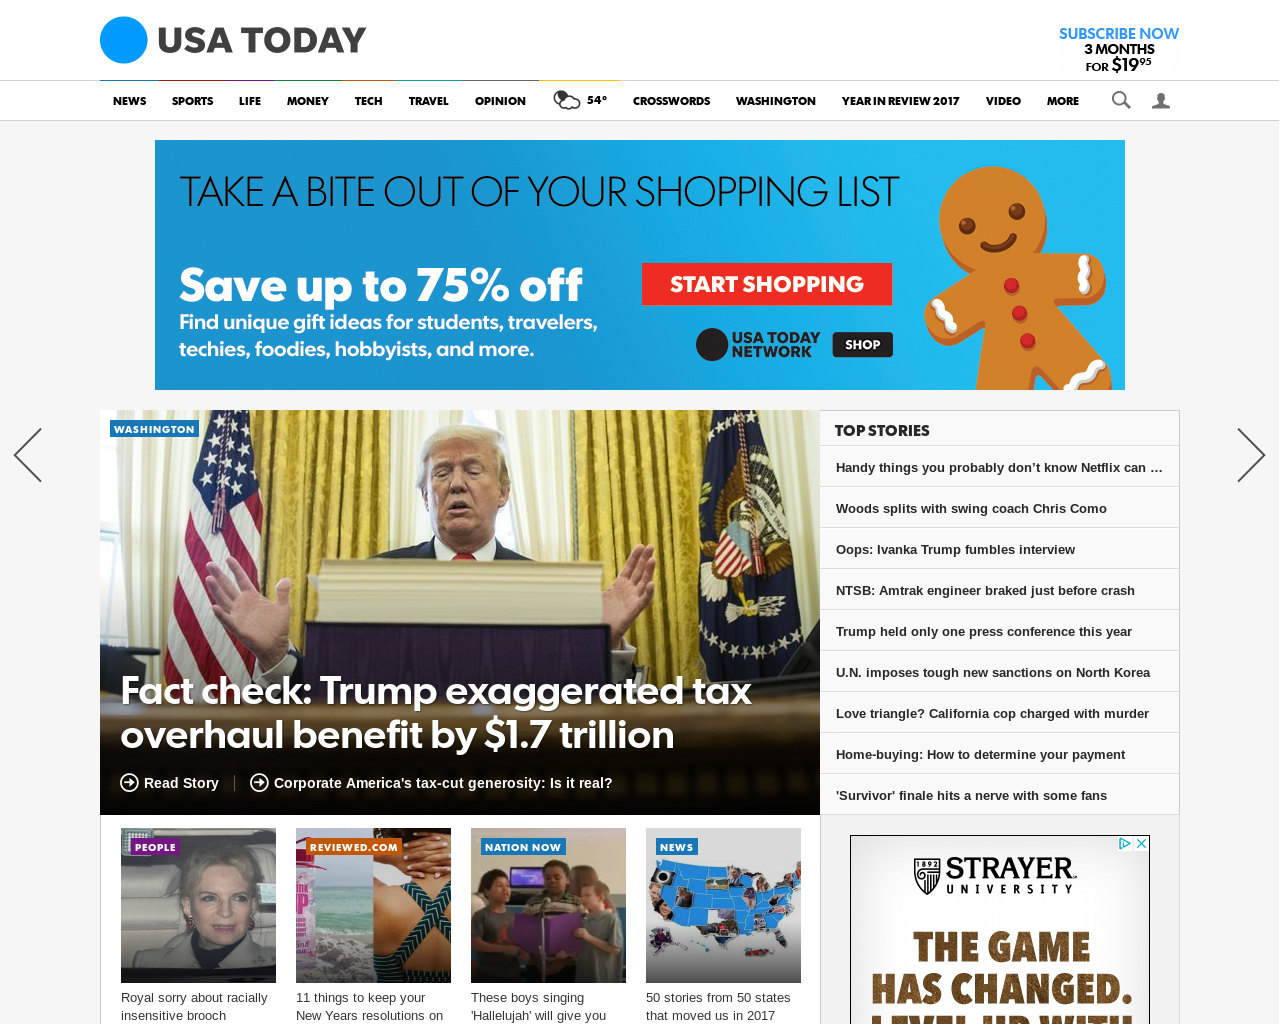 www.usatoday.com(2017/12/23 08:00:39)